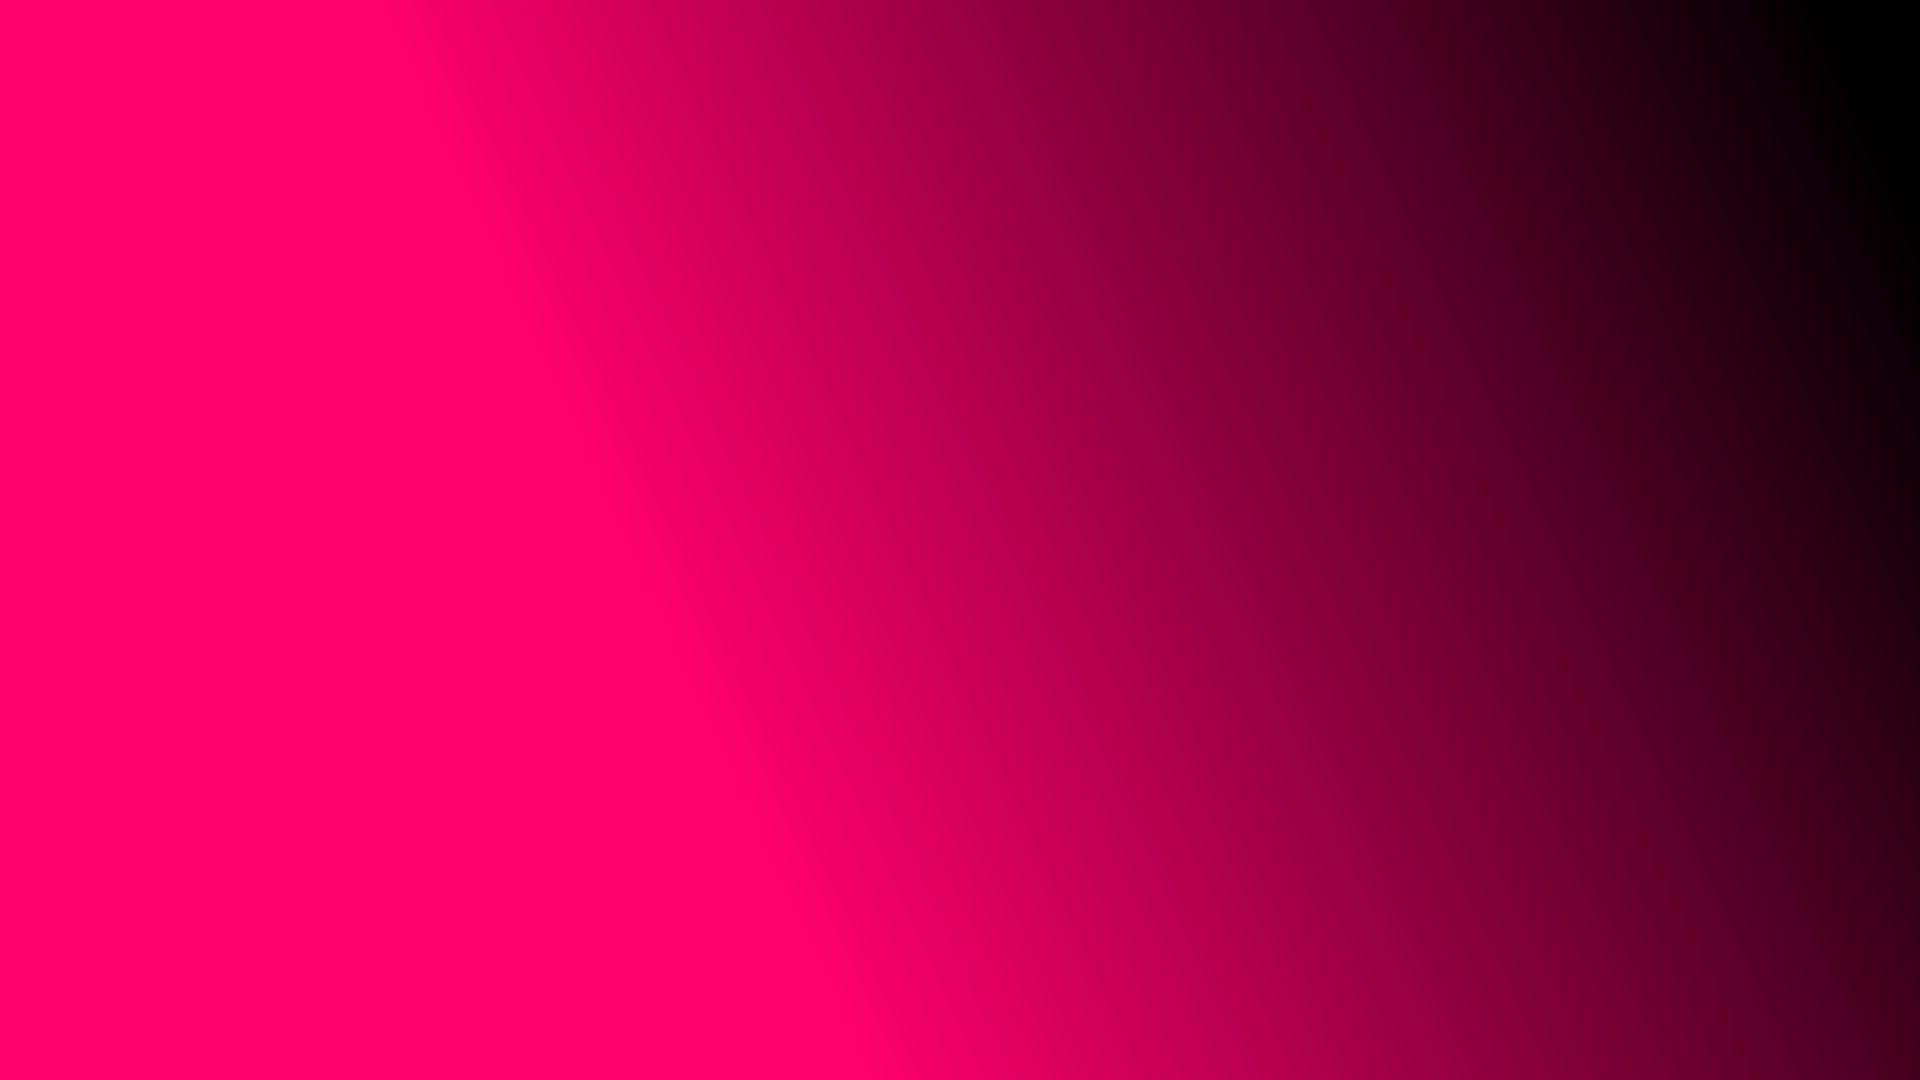 wallpaper desktop gradient pink black backgorund 1920x1080